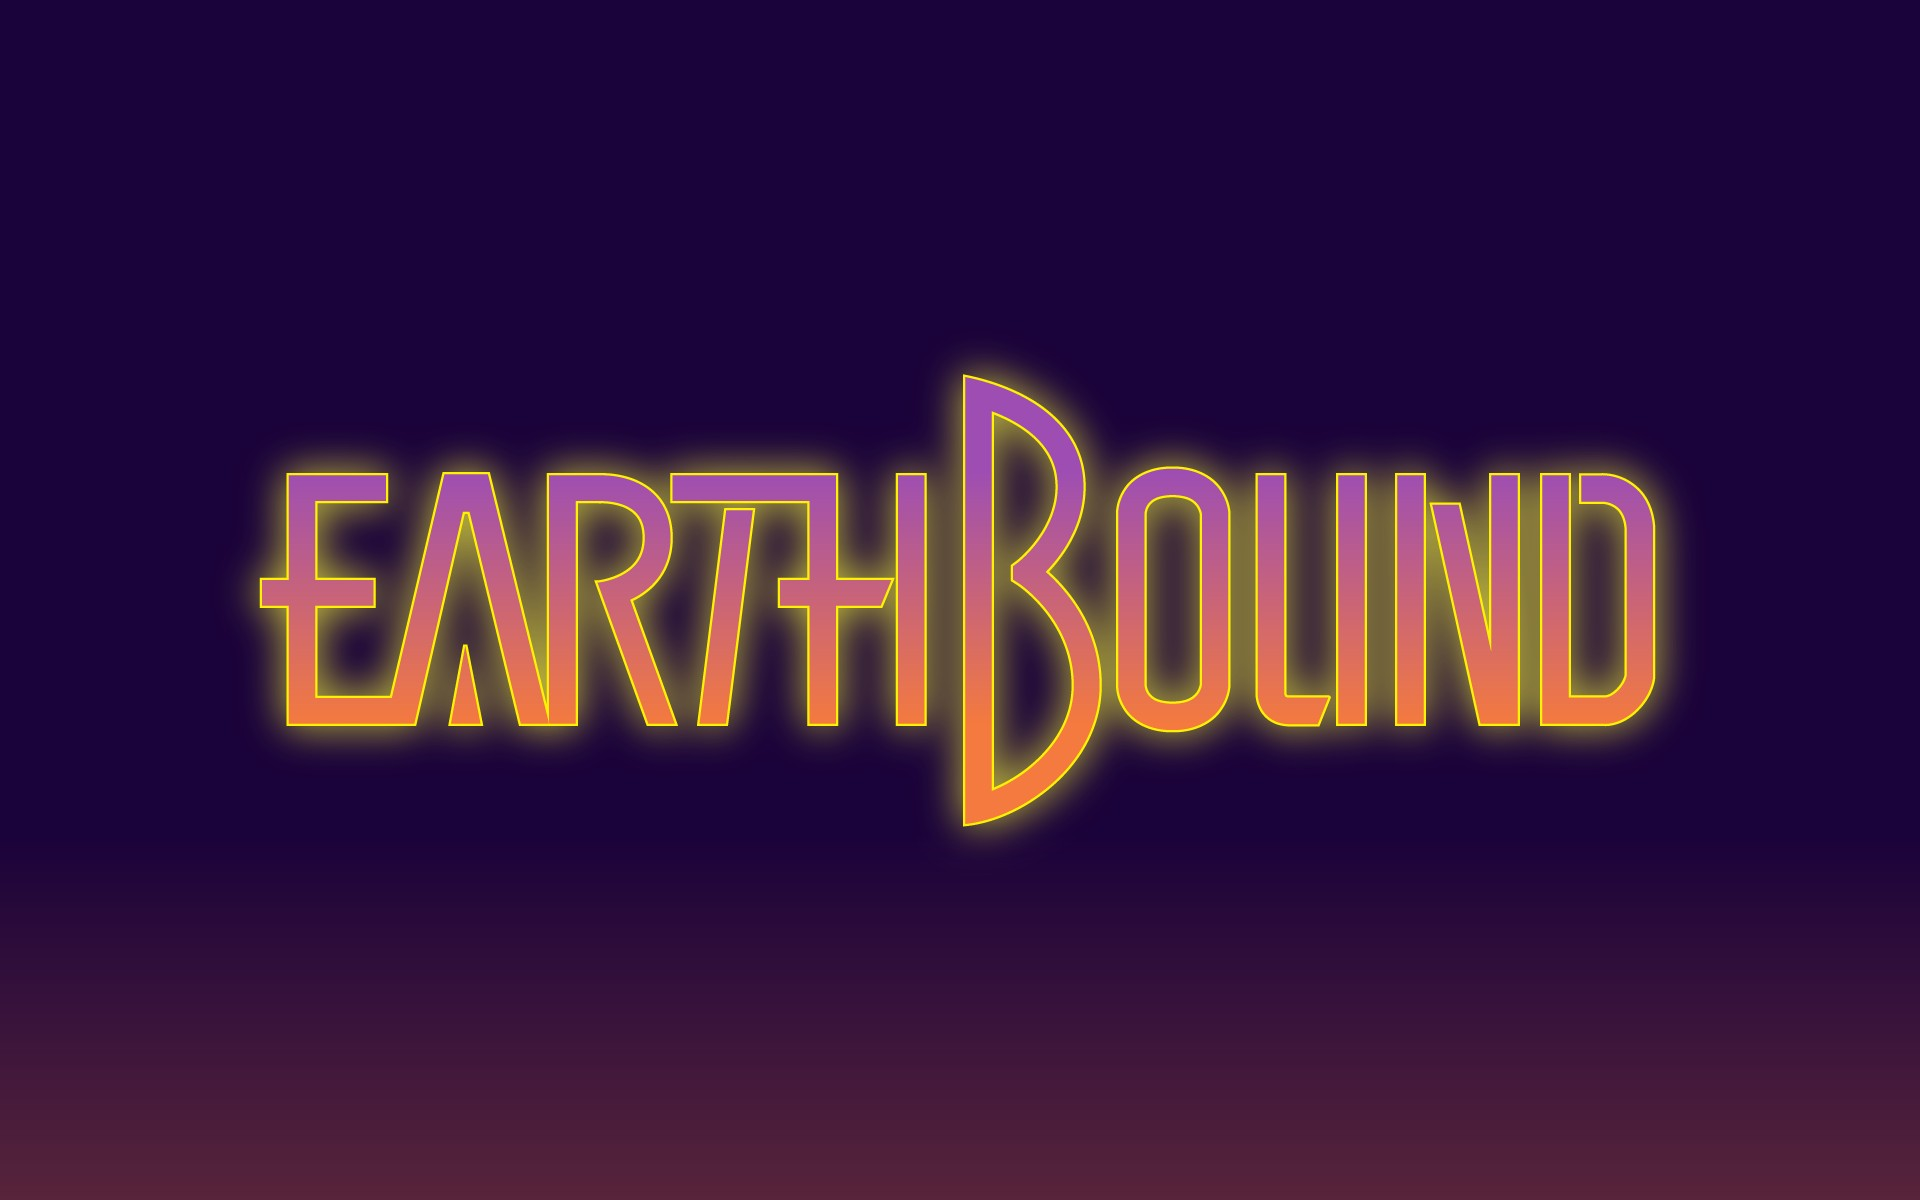 Earthbound wallpaper ·① Download free cool wallpapers for